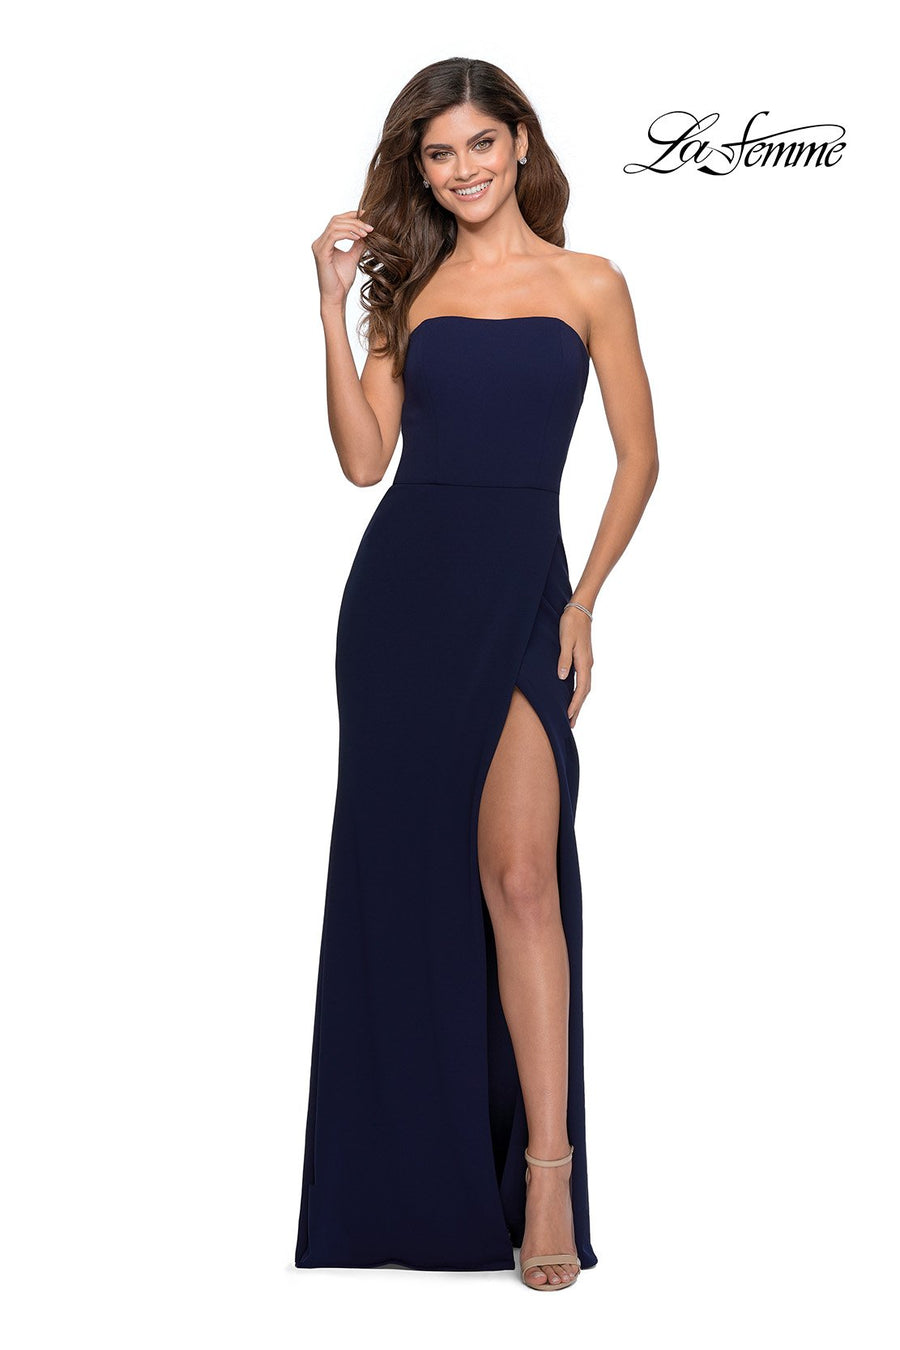 La Femme 28835 prom dress images.  La Femme 28835 is available in these colors: Navy, Wine.